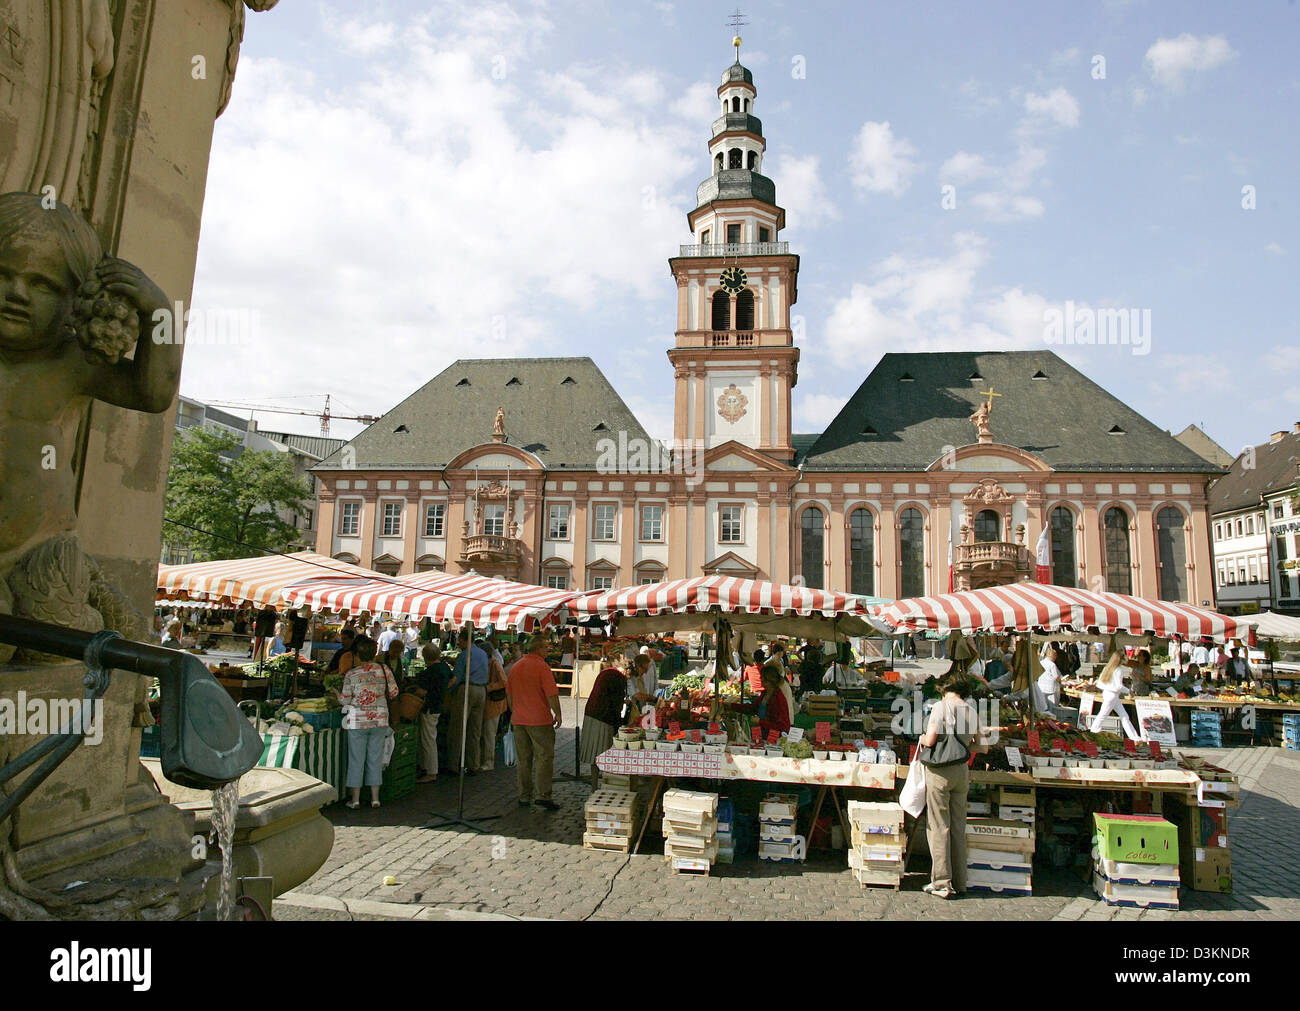 dpa) - The picture shows the Market Square in downtown